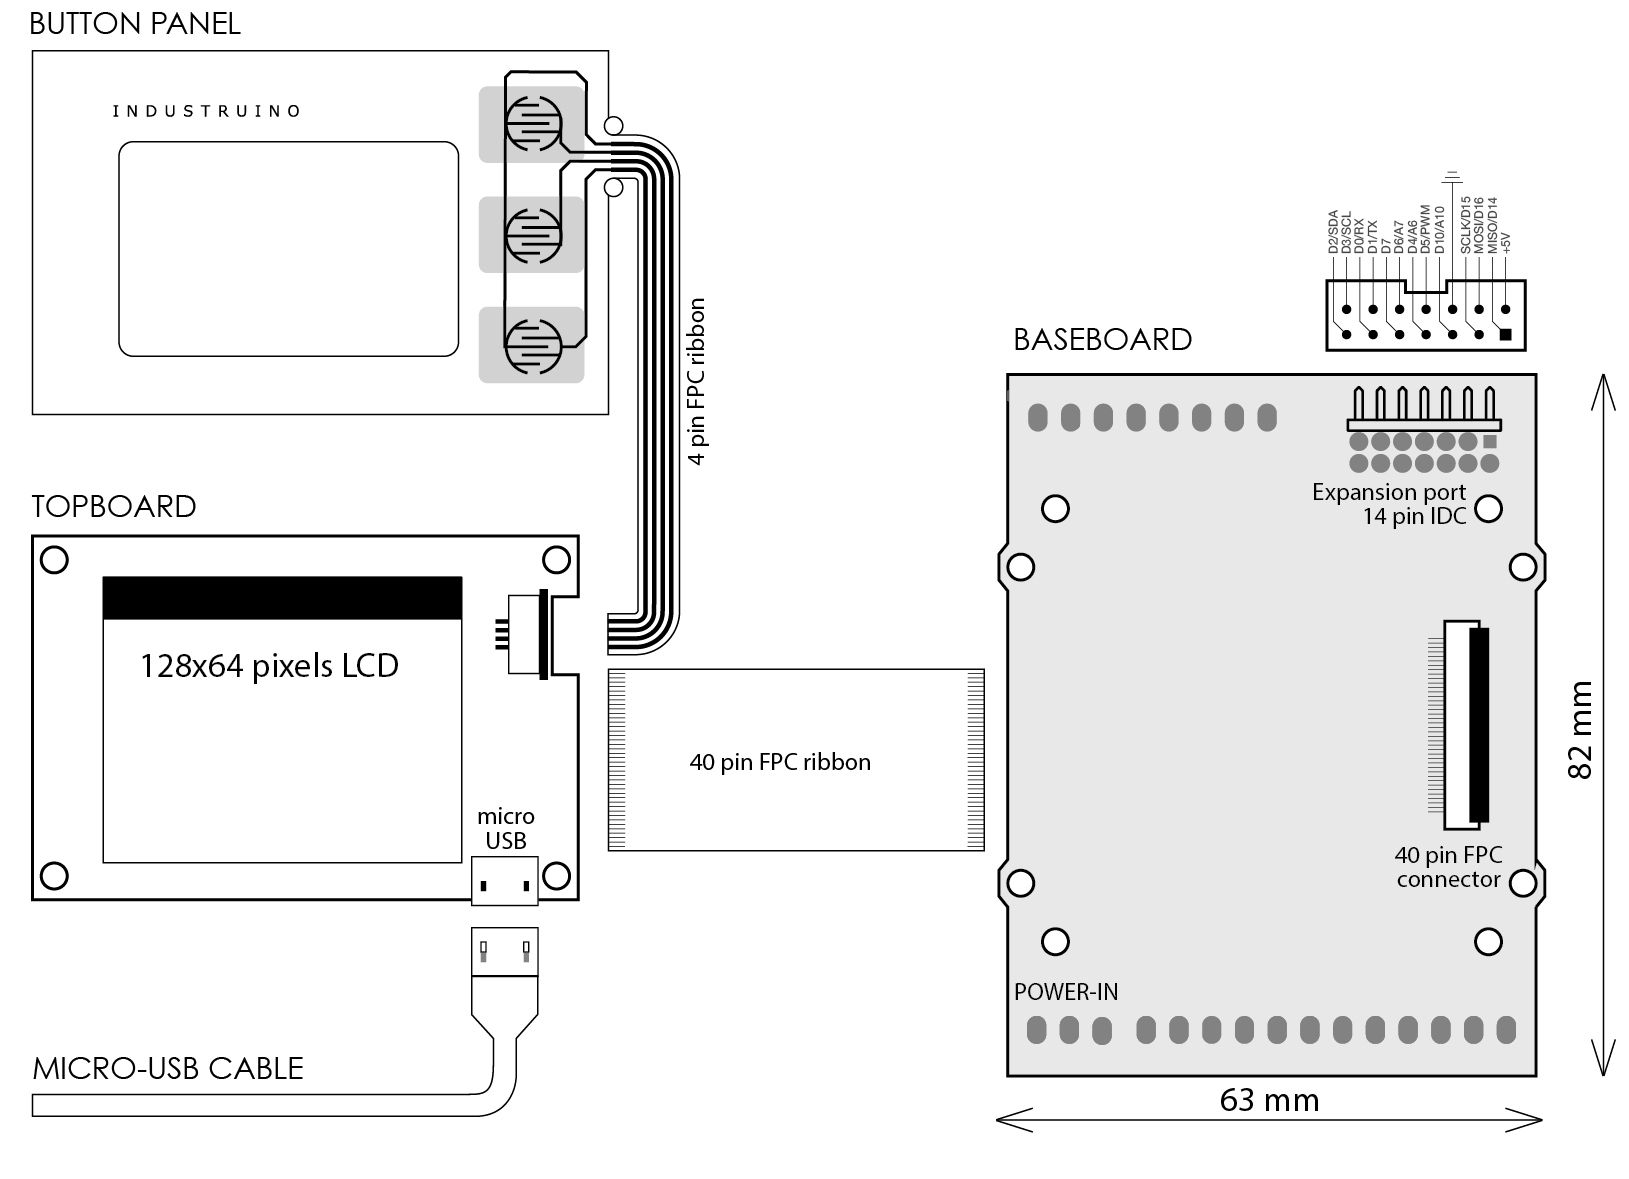 Baseboards Industruino Pin Lcd Description For Interfacing With Microcontrollers On The Topboard Is Brain And User Interface Of Hosting A Microcontroller Atmega32u4 Or At90usb1286 Screen All Signals Connect From